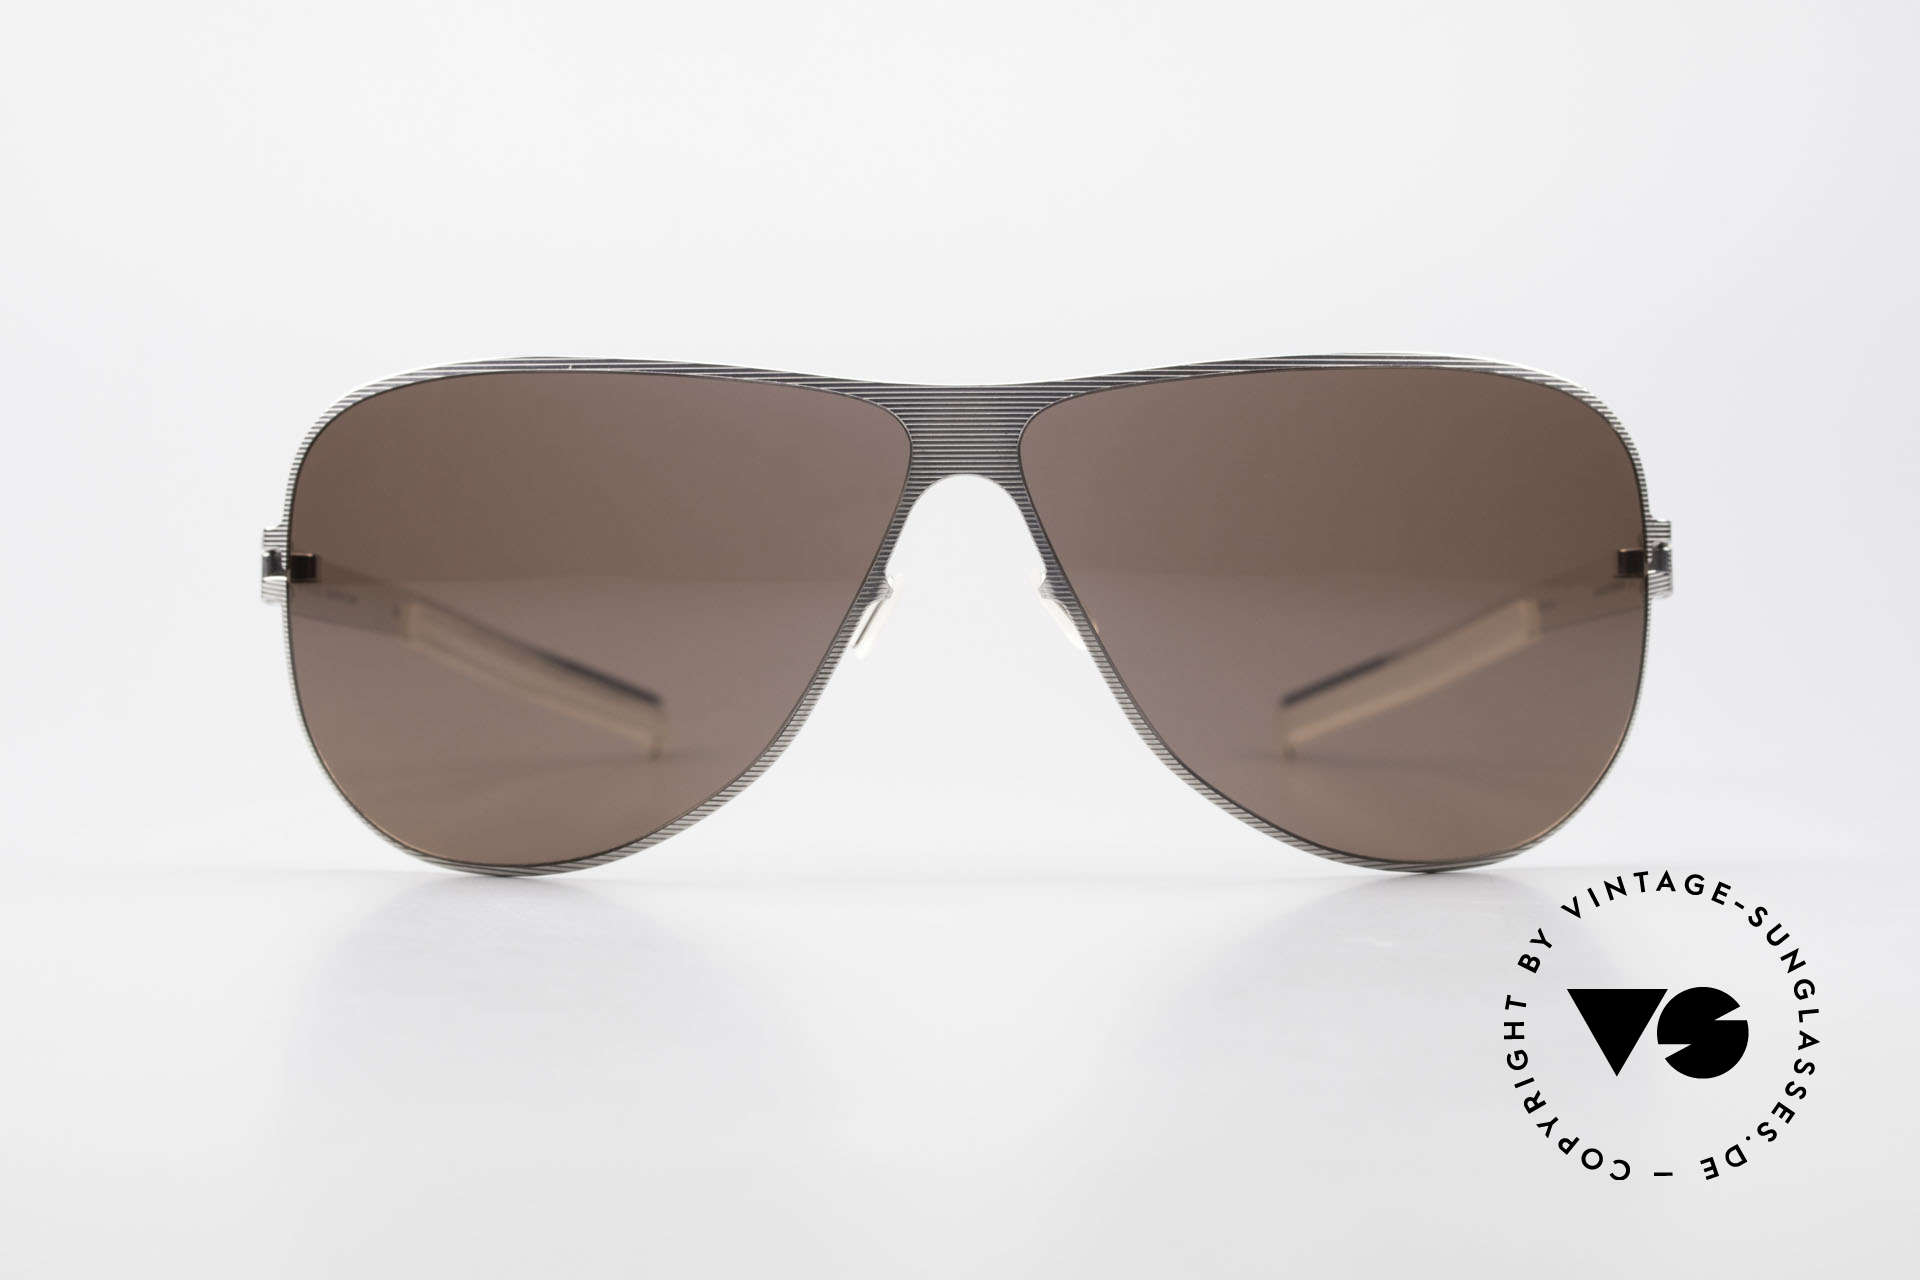 Mykita Ava Ladies Polarized Shades 2007's, MYKITA: the youngest brand in our vintage collection, Made for Women